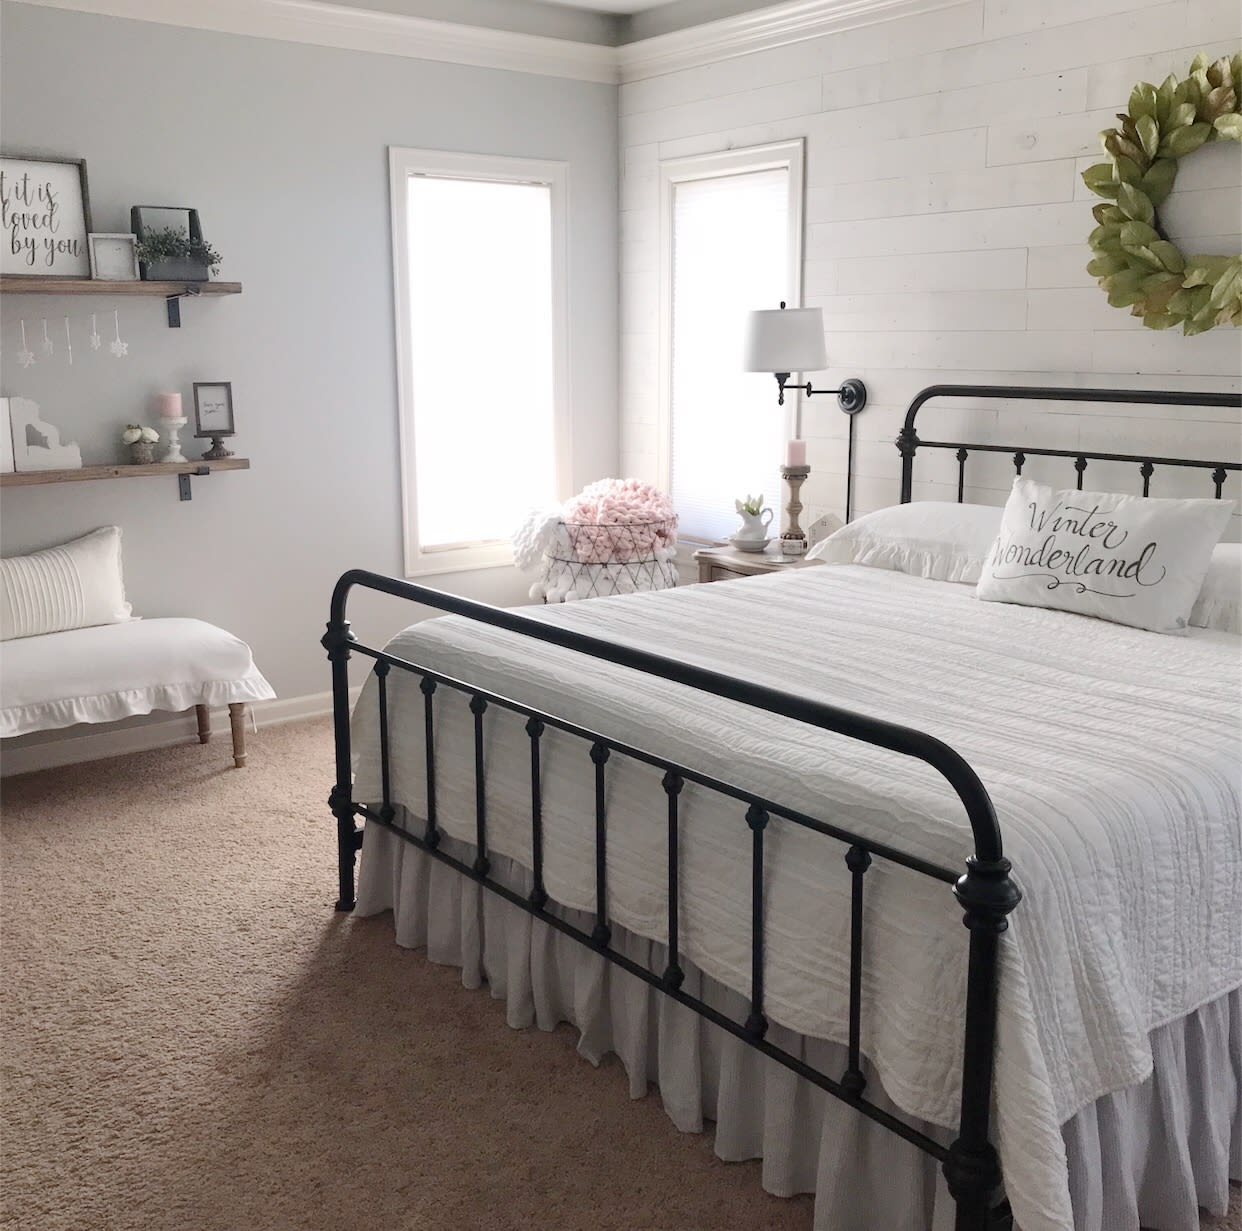 Classic farmhouse style bedroom with a Hamptons finish feature wall  made with peel and stick wood wall planks by Stikwood.